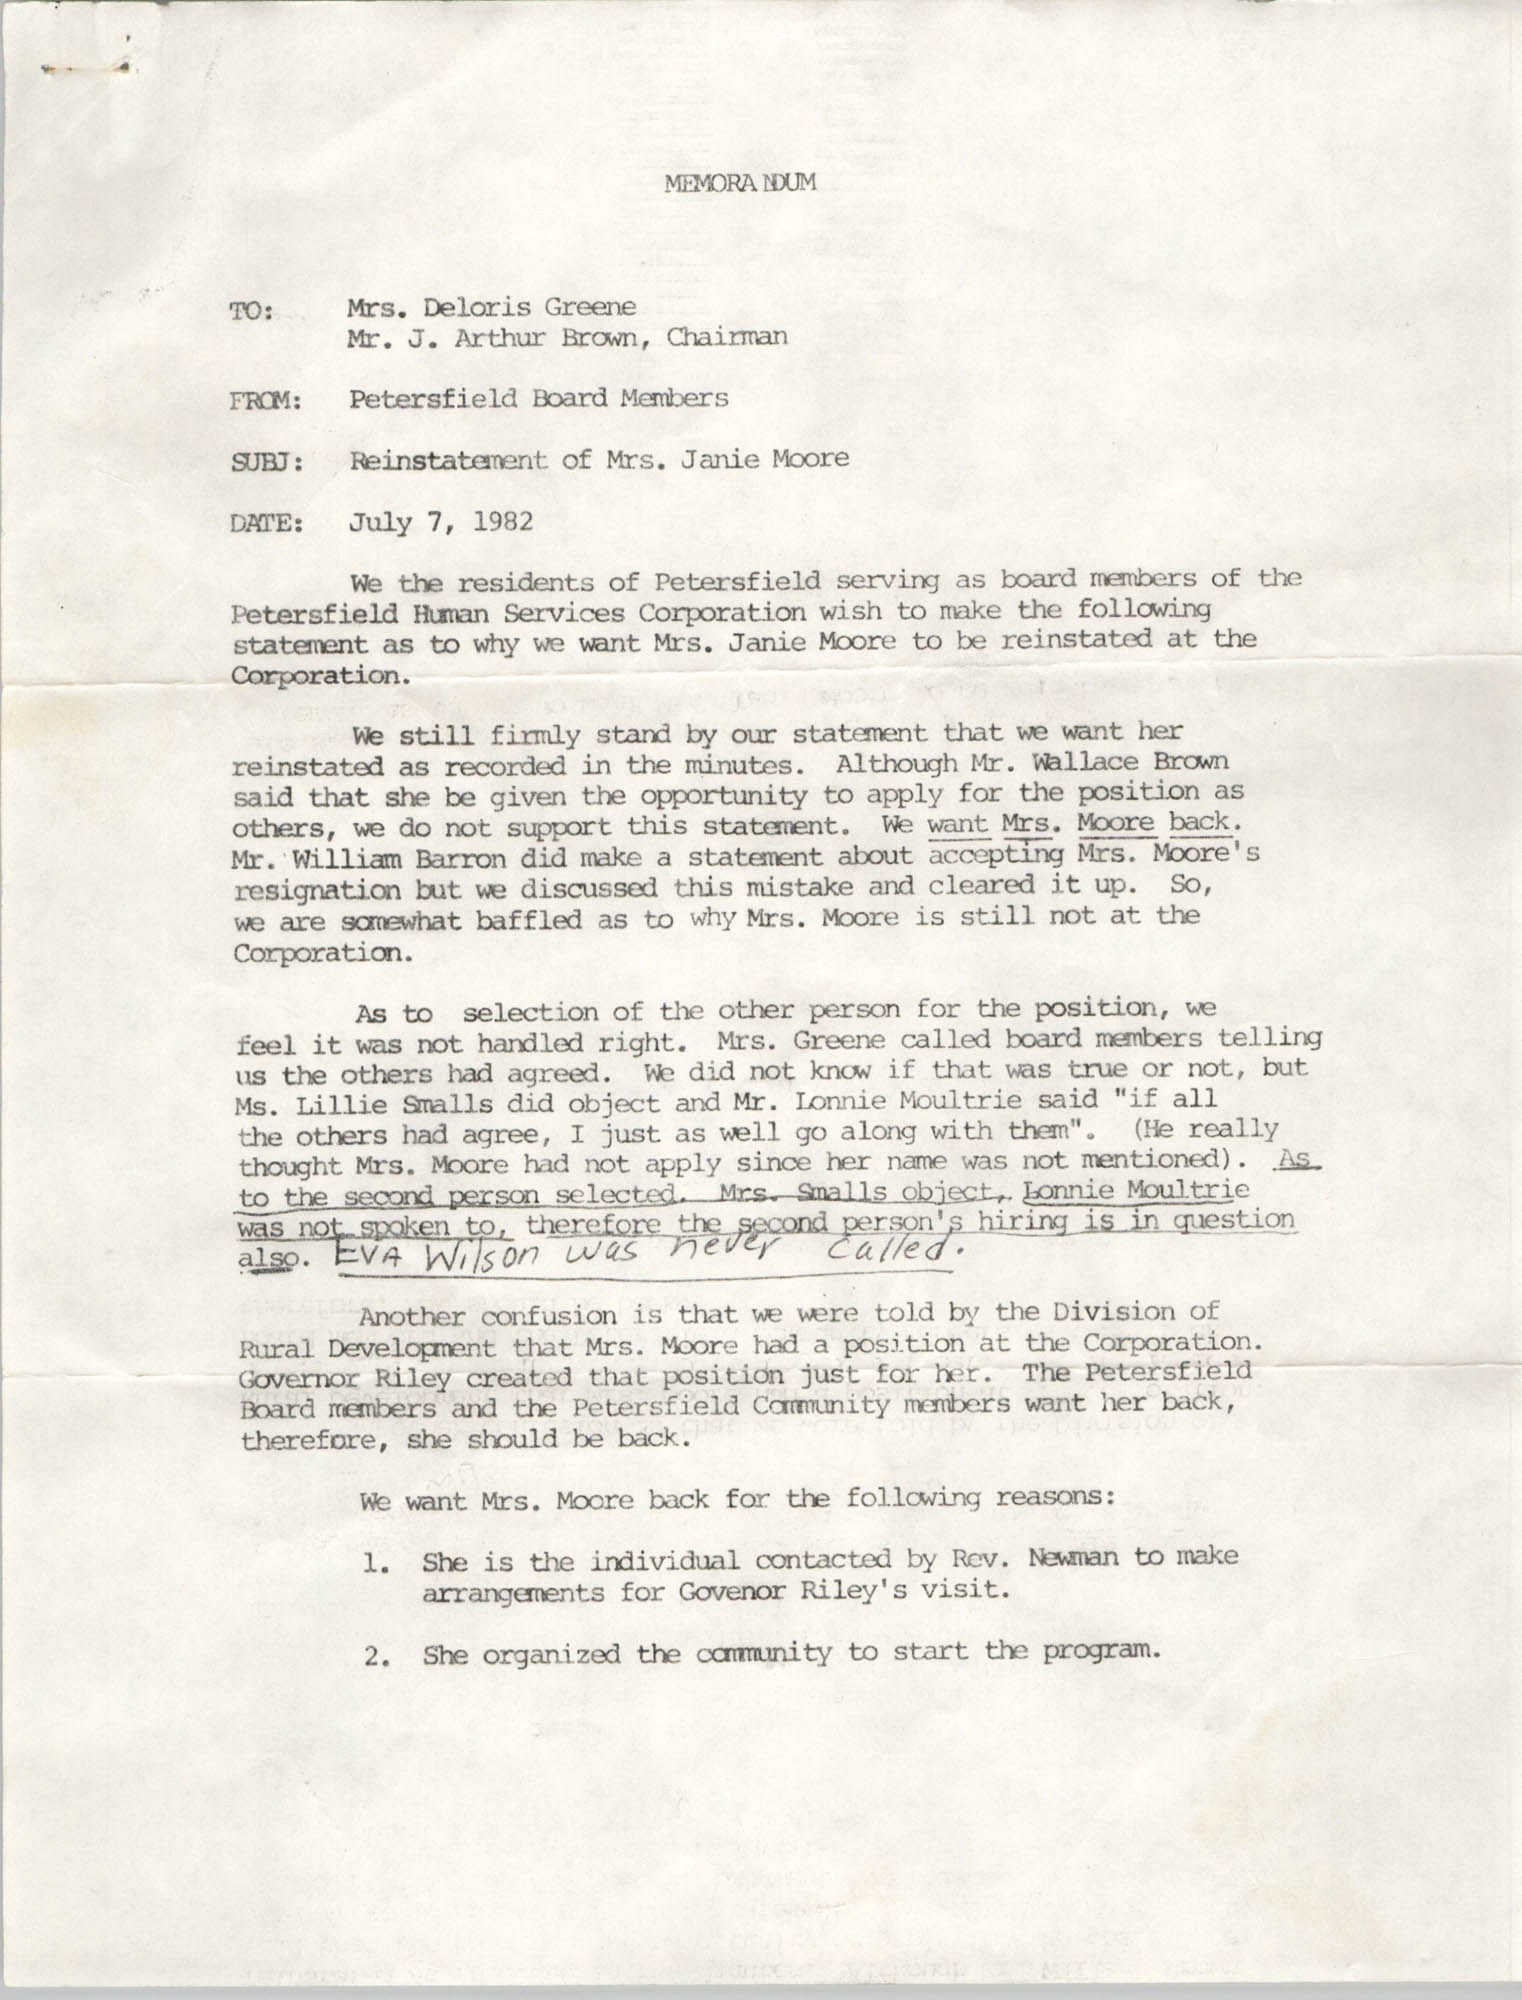 Letter from Petersfield Board Members to Deloris Greene and J. Arthur Brown, July 7, 1982